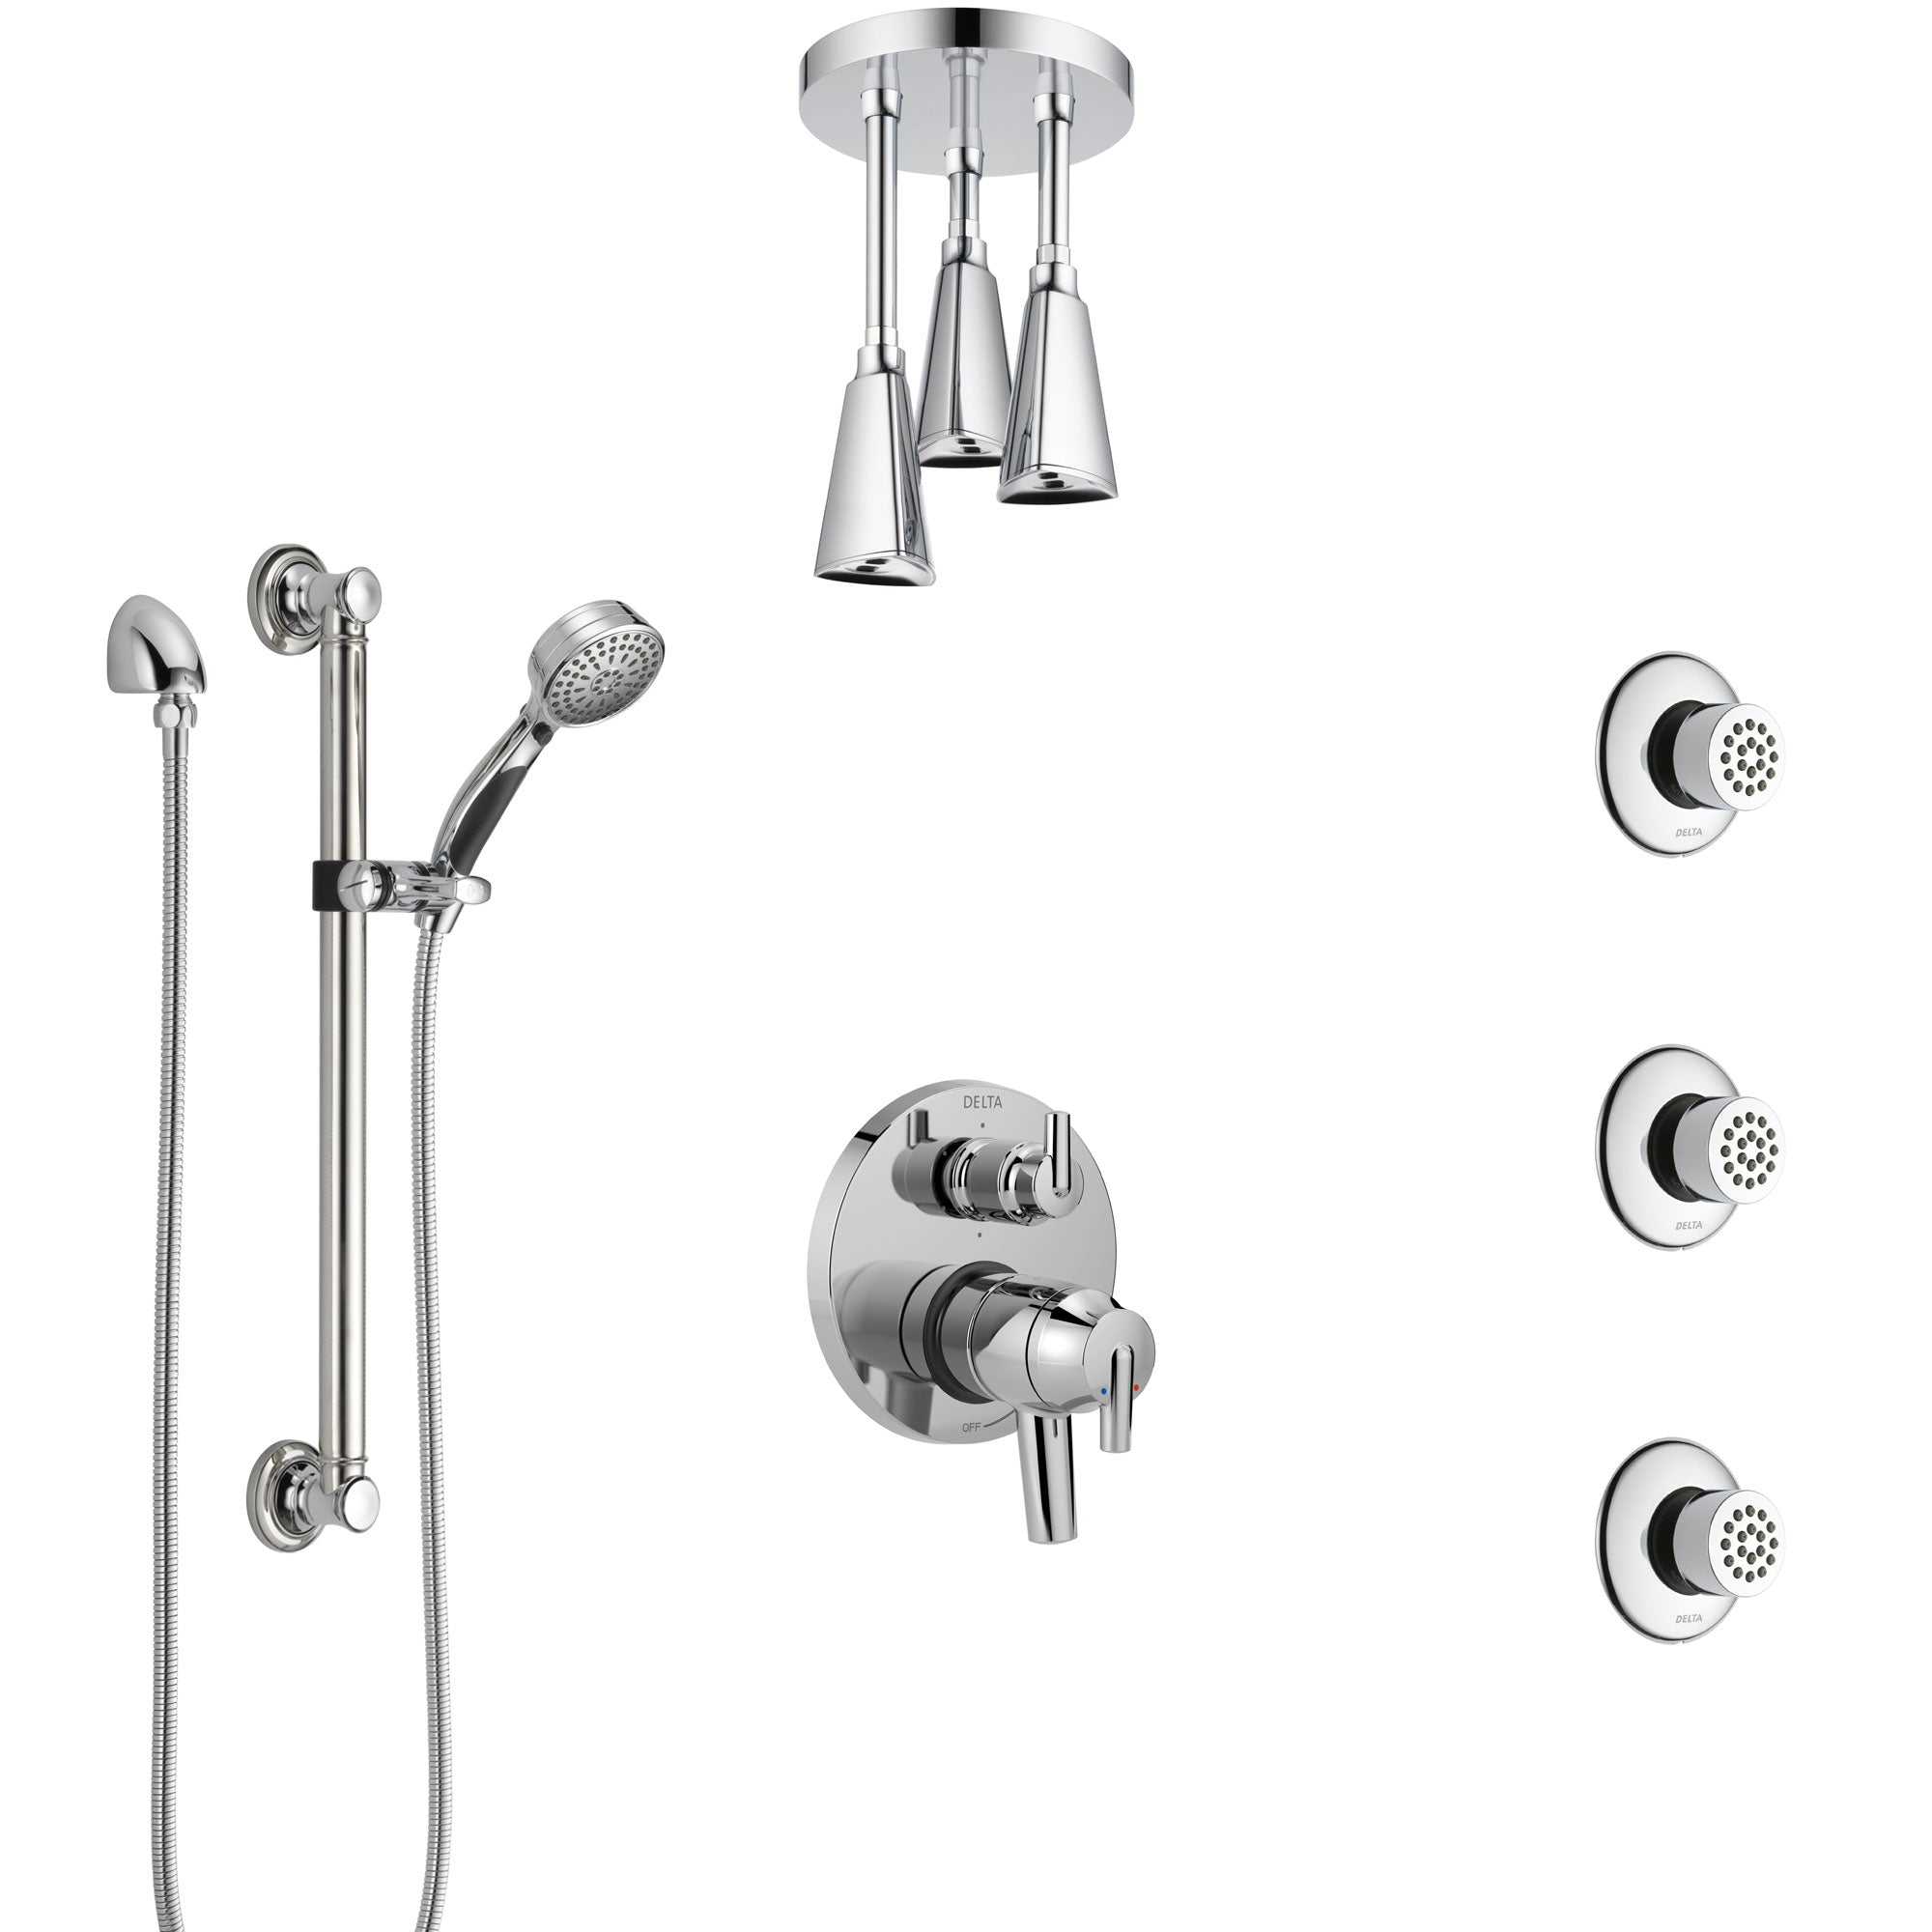 Delta Trinsic Chrome Shower System with Dual Control Handle, Integrated Diverter, Ceiling Showerhead, 3 Body Sprays, and Grab Bar Hand Shower SS279593